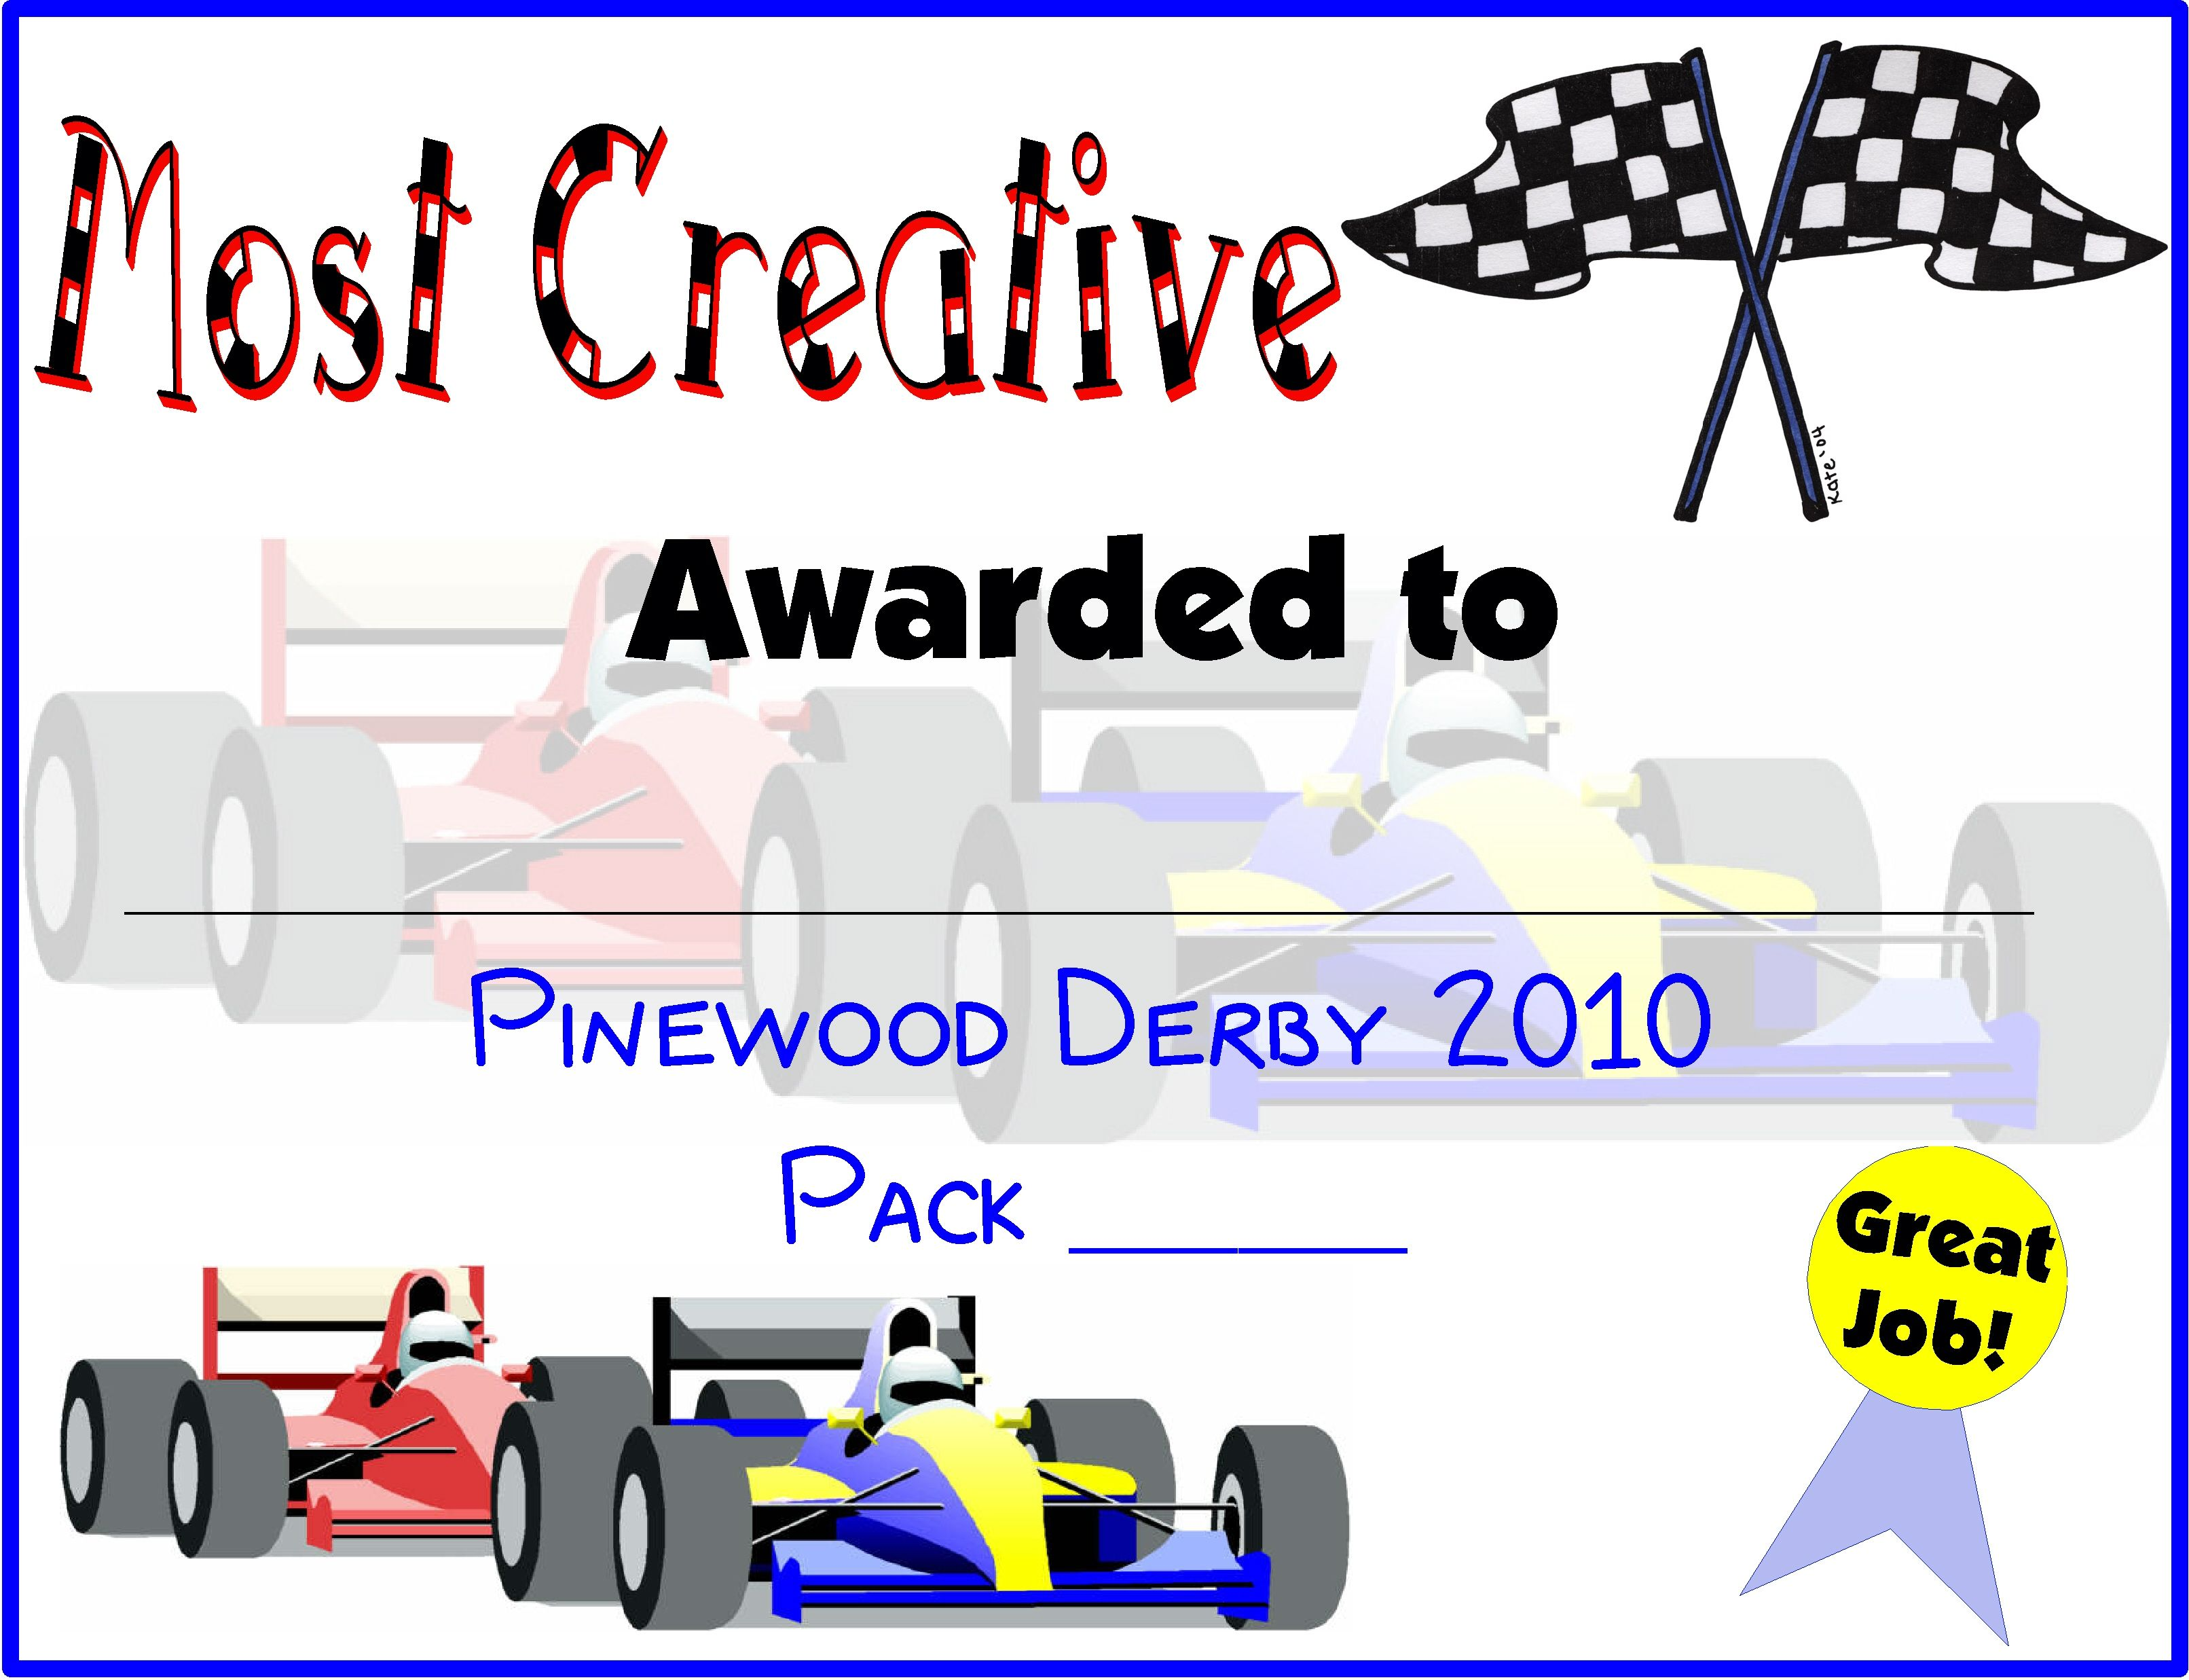 Pinewood Derby Certificates | Do Your Best! Cub Scouts | Pinterest